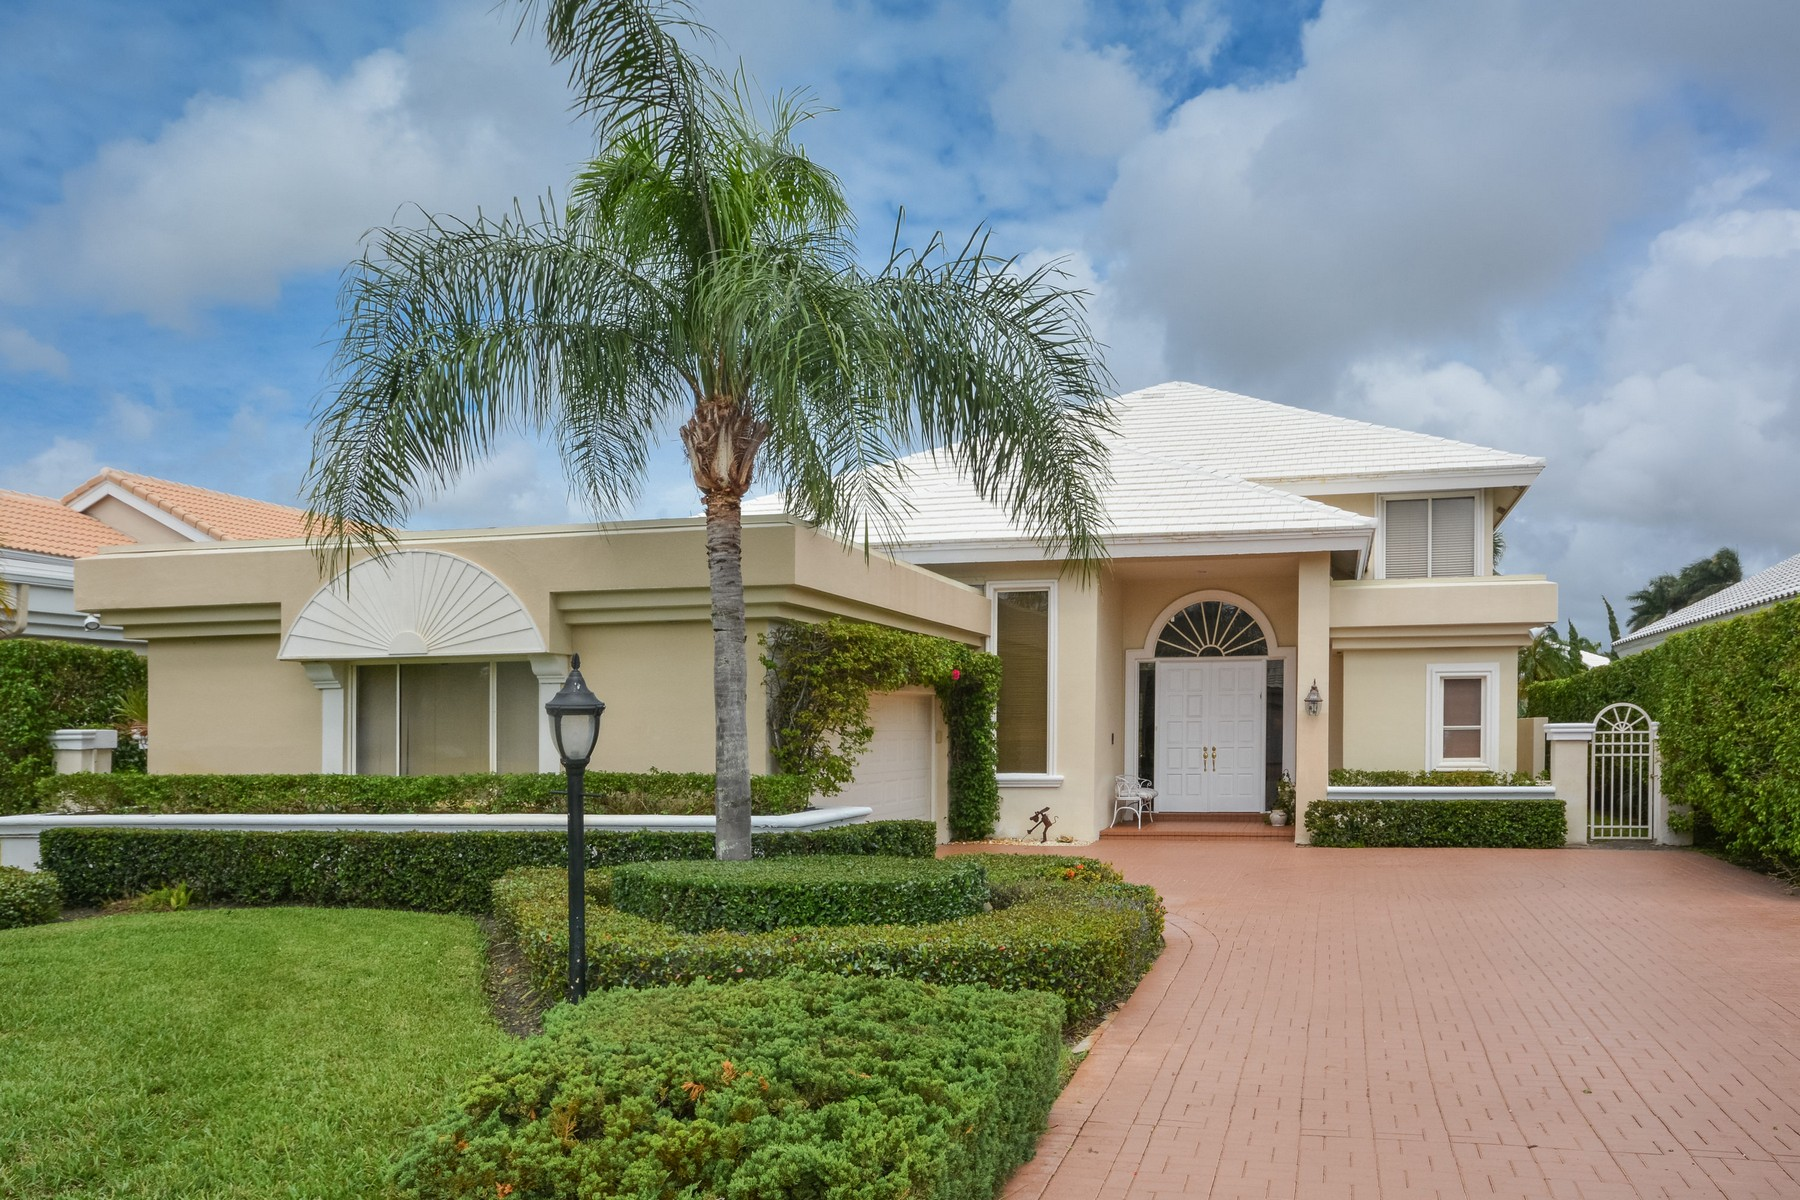 Single Family Home for Sale at 7261 Gateside Dr , Boca Raton, FL 33496 7261 Gateside Dr, Boca Raton, Florida, 33496 United States